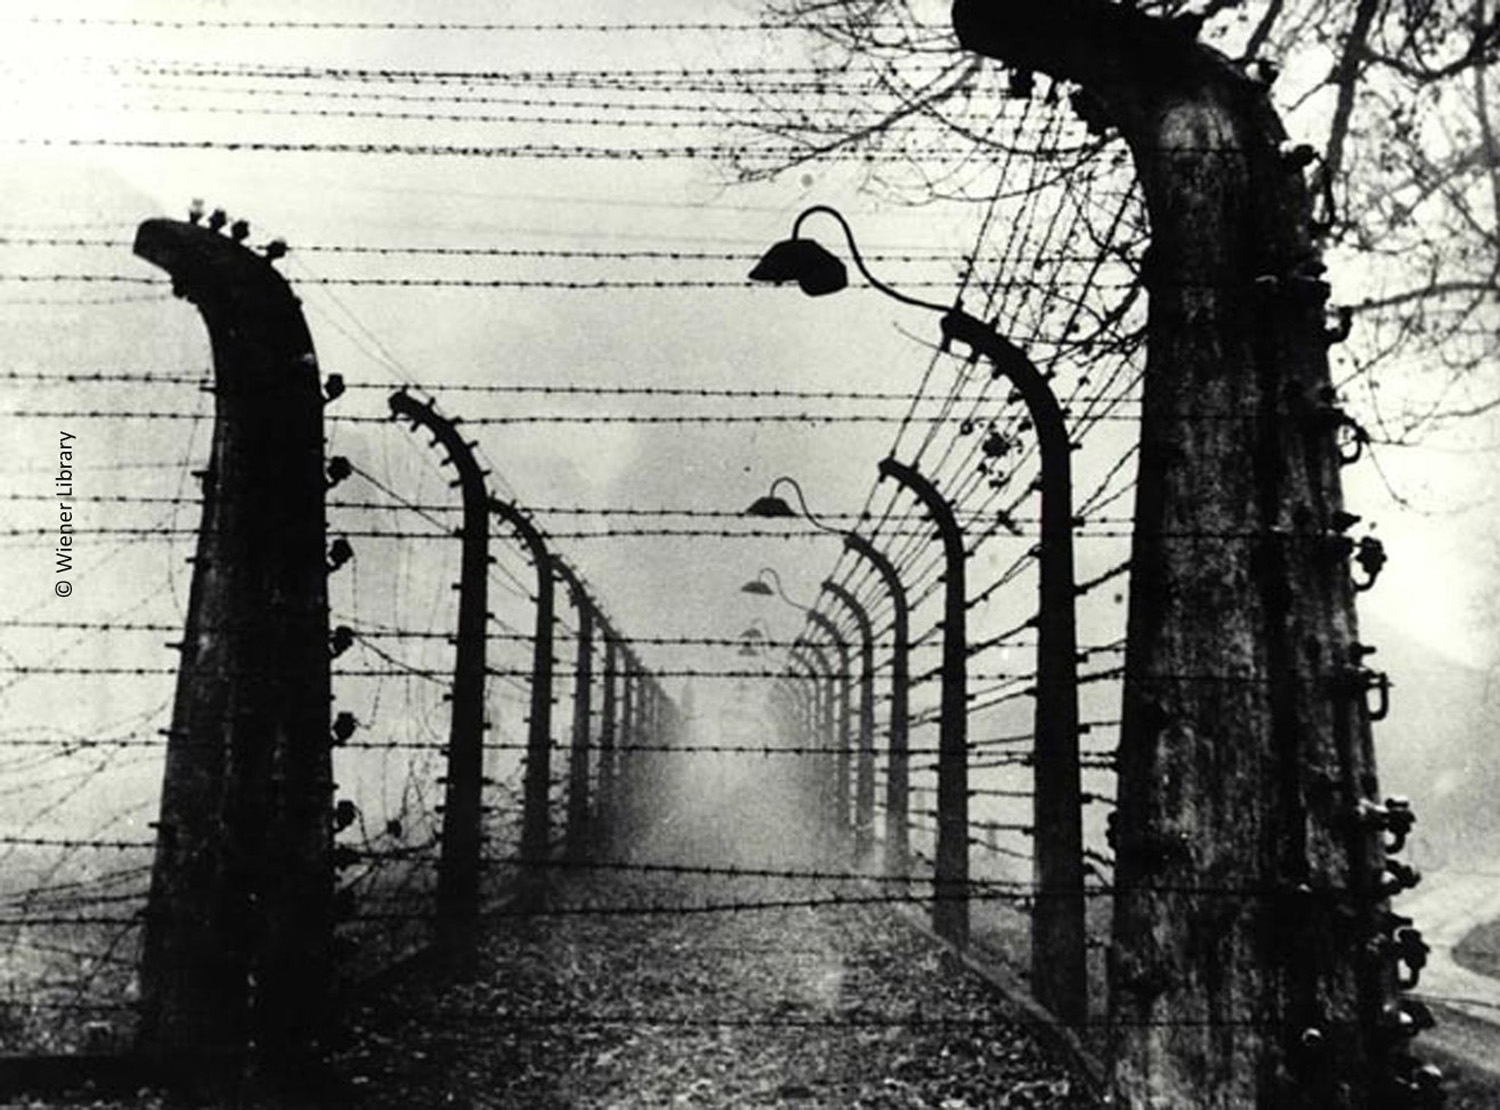 Barbed wire fences outside the mist-covered Auschwitz concentration camp